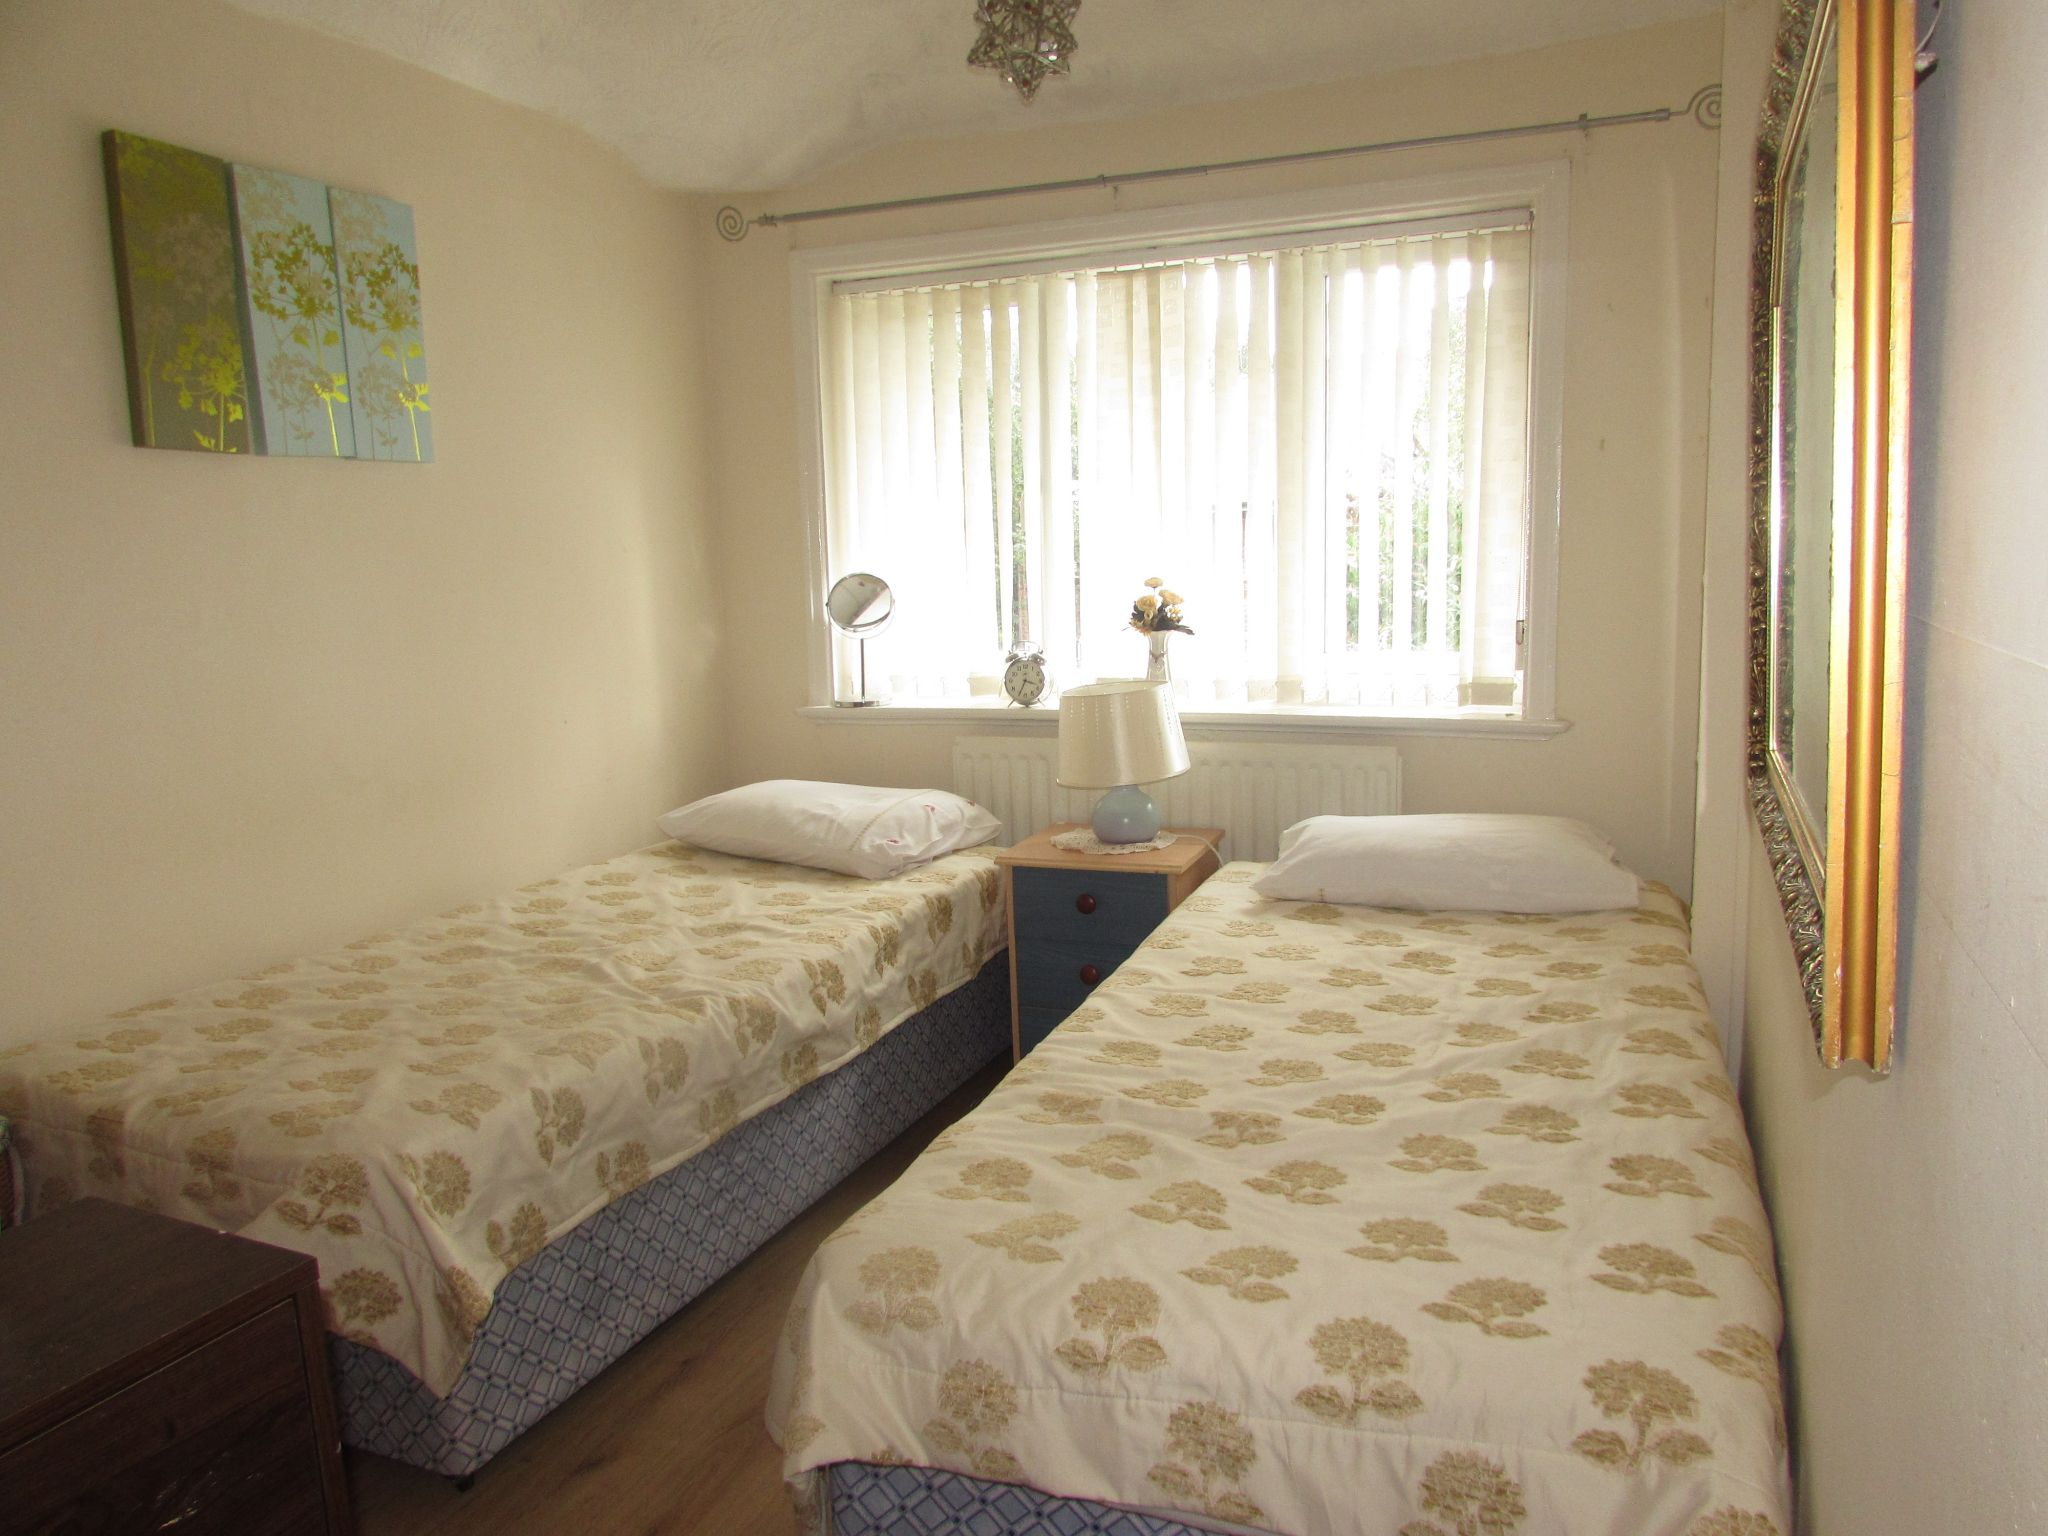 3 Bedroom Semi-detached House For Sale - Photograph 7